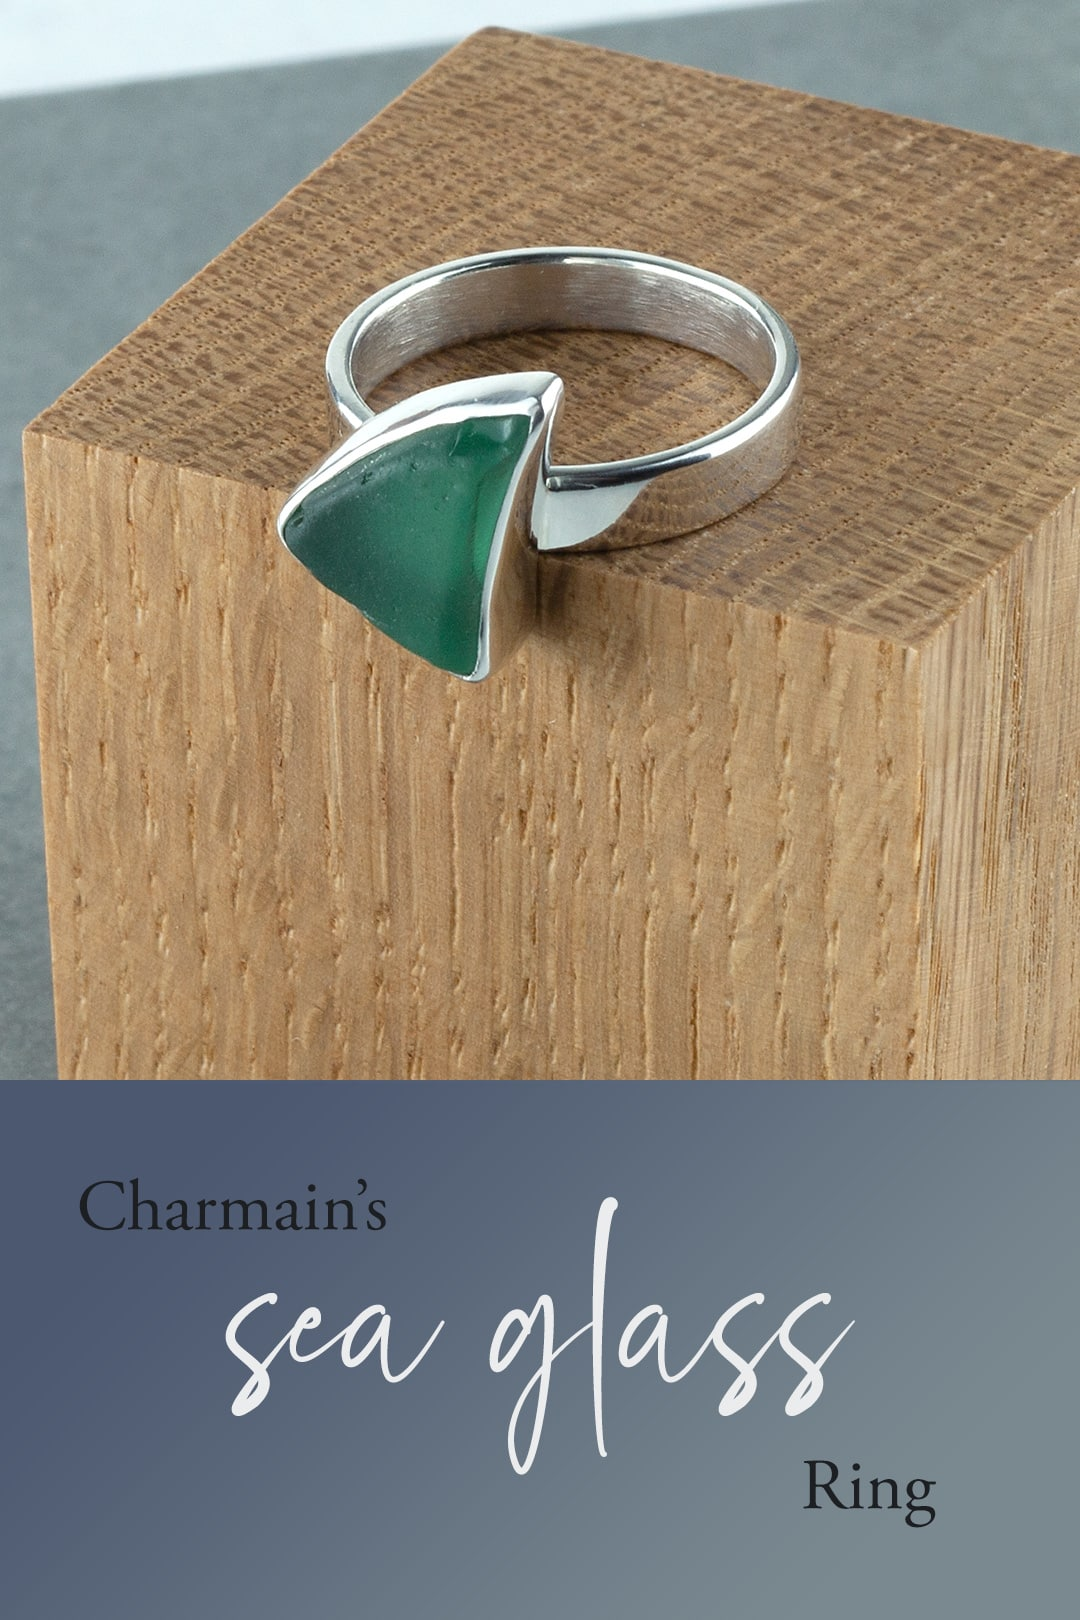 Charmain's sea glass ring commission